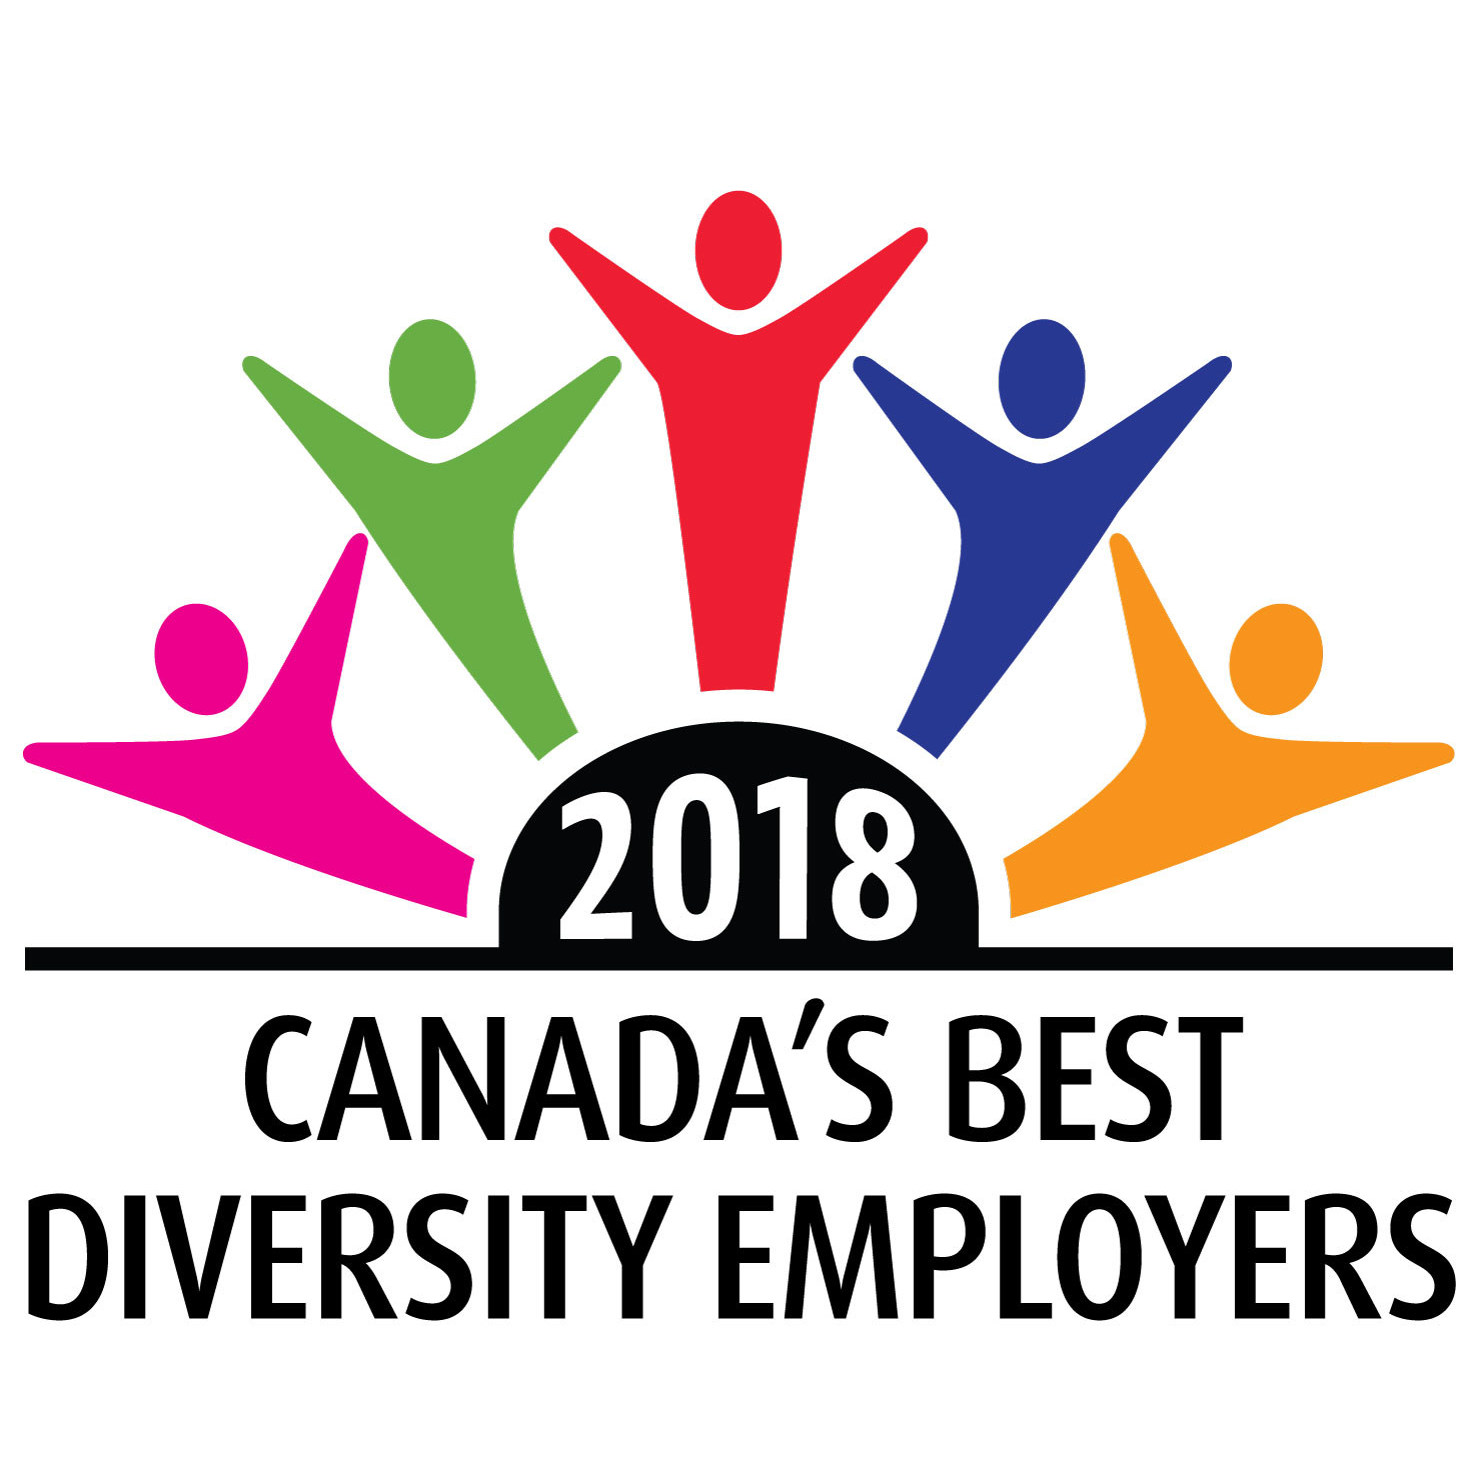 Canada's Best Diversity Employer 2018